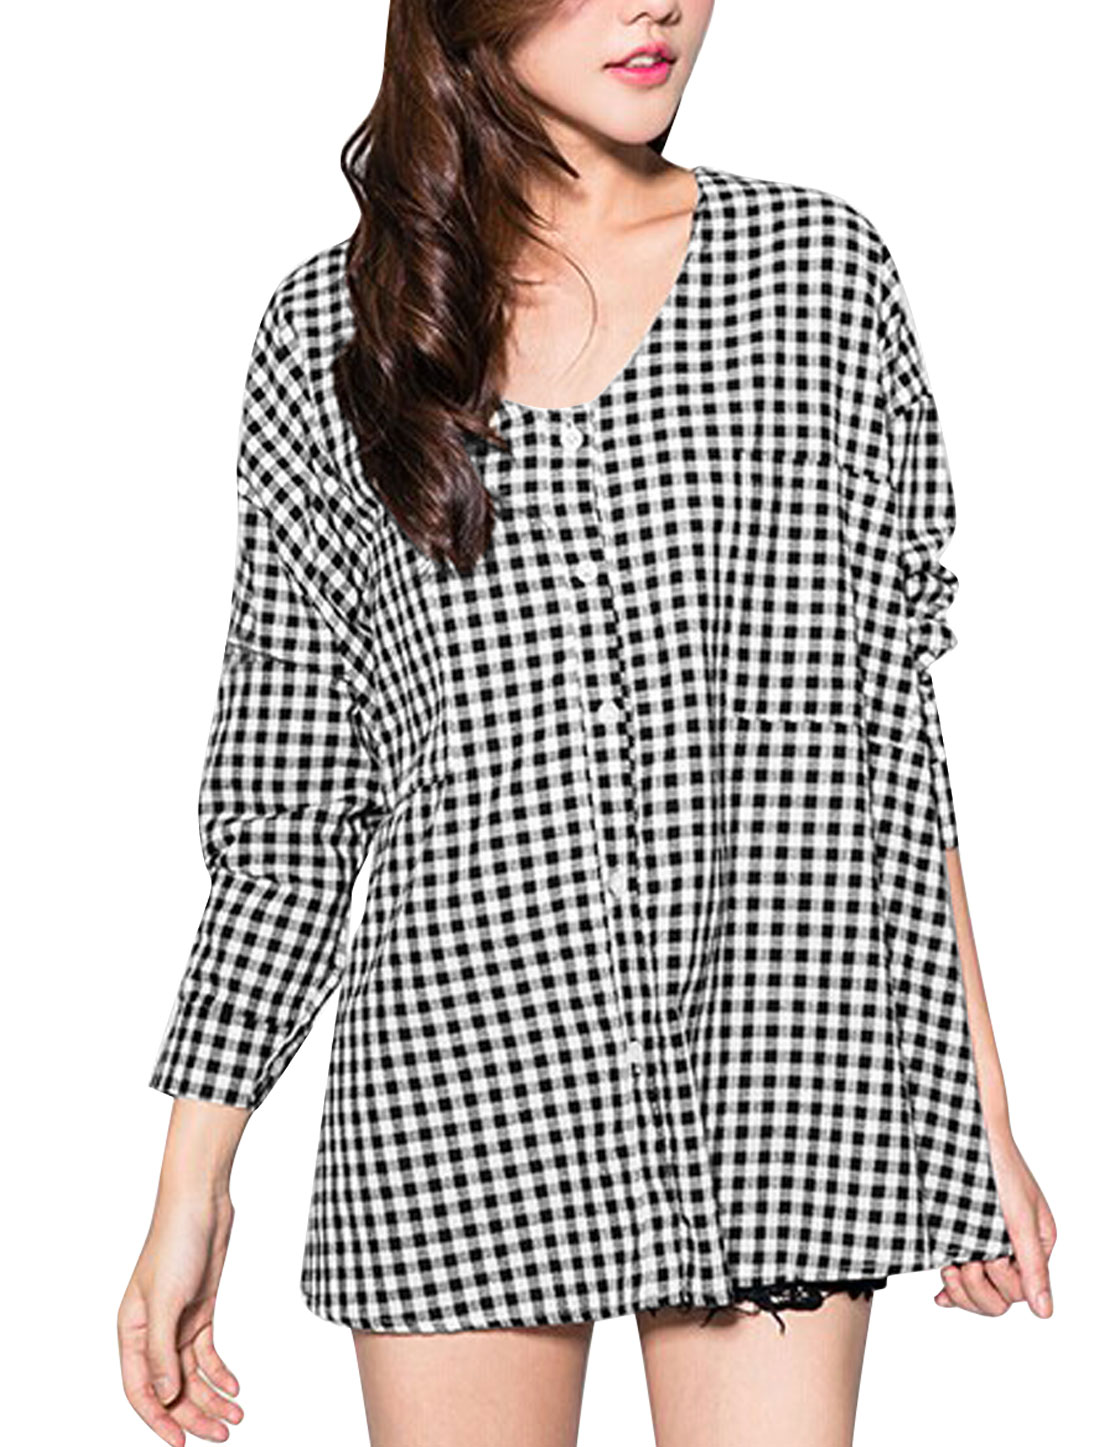 Women Plaids Pattern Single Breasted Lace Up Back Tunic Top Black White XS